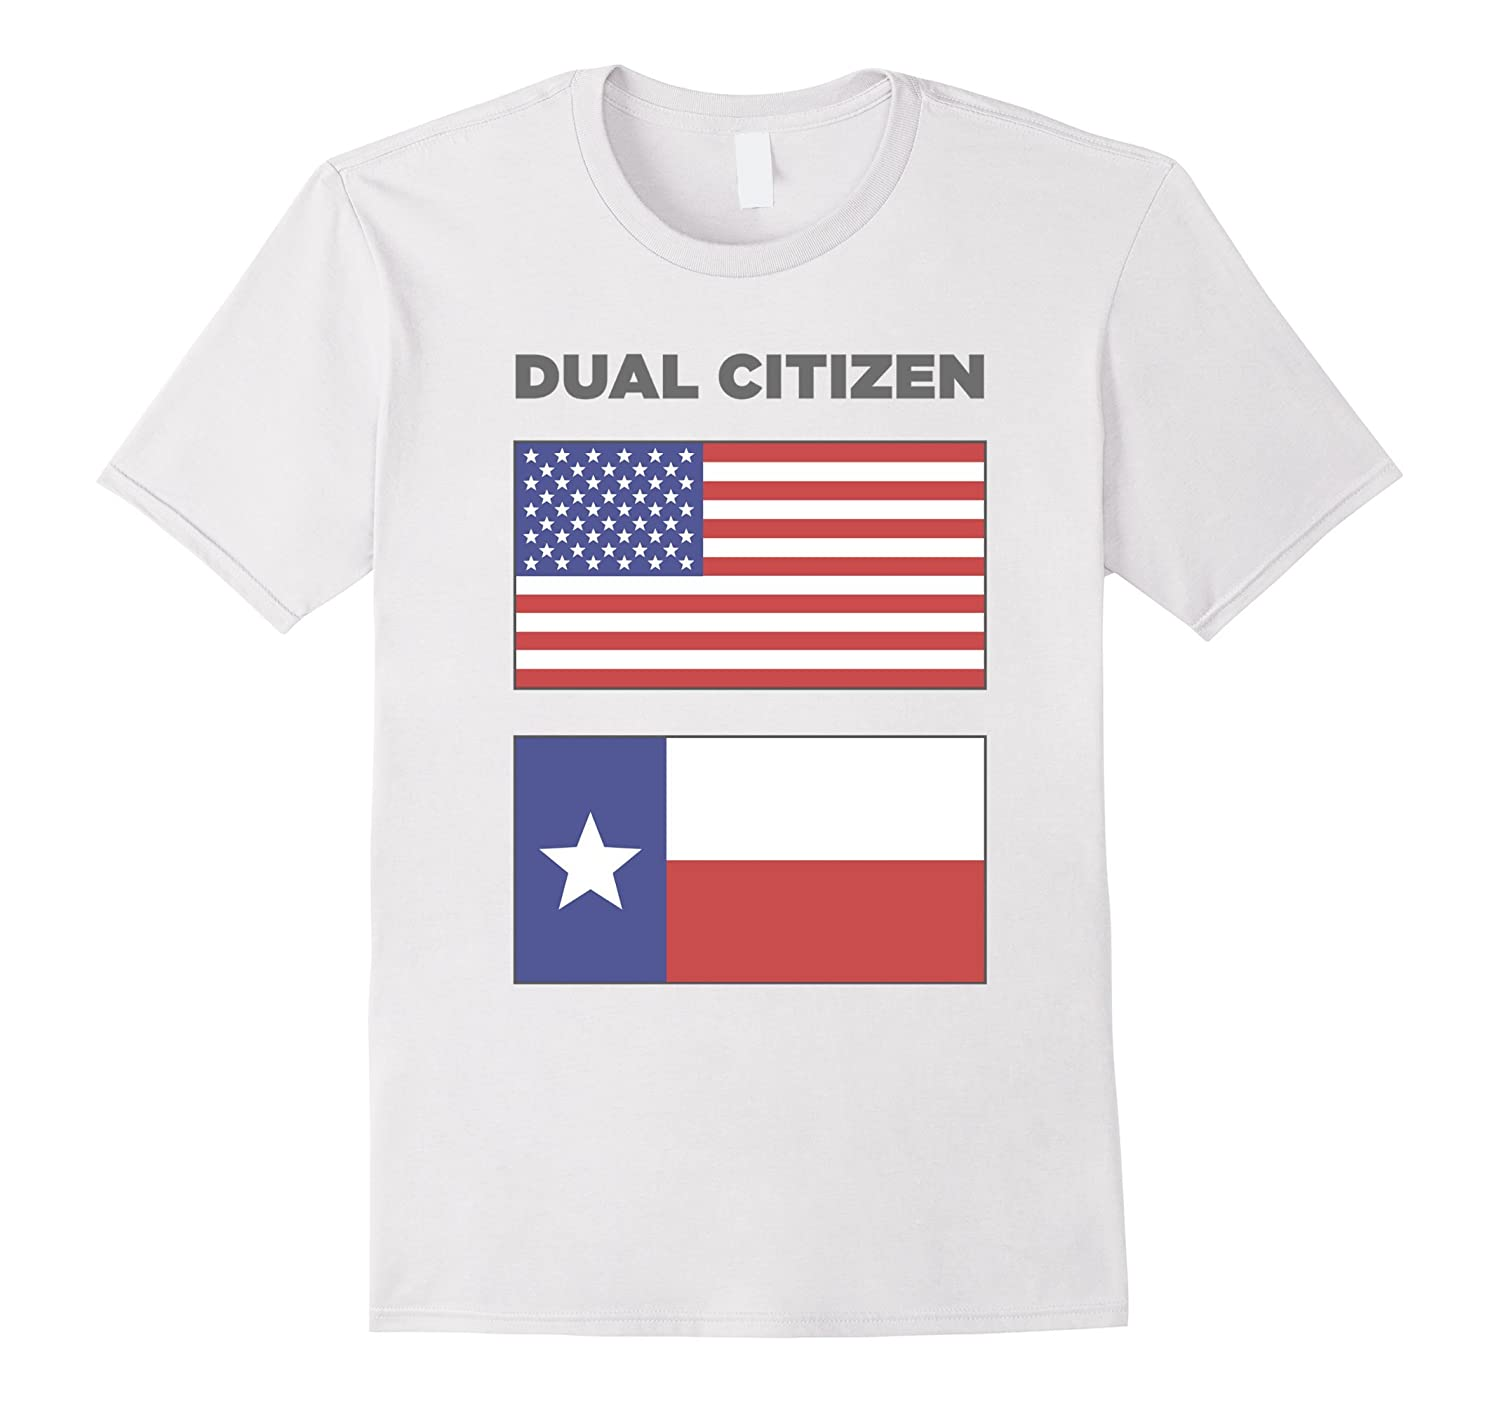 de7c1ae68 Dual Citizen of the United States and Texas White T-Shirt-CL – Colamaga